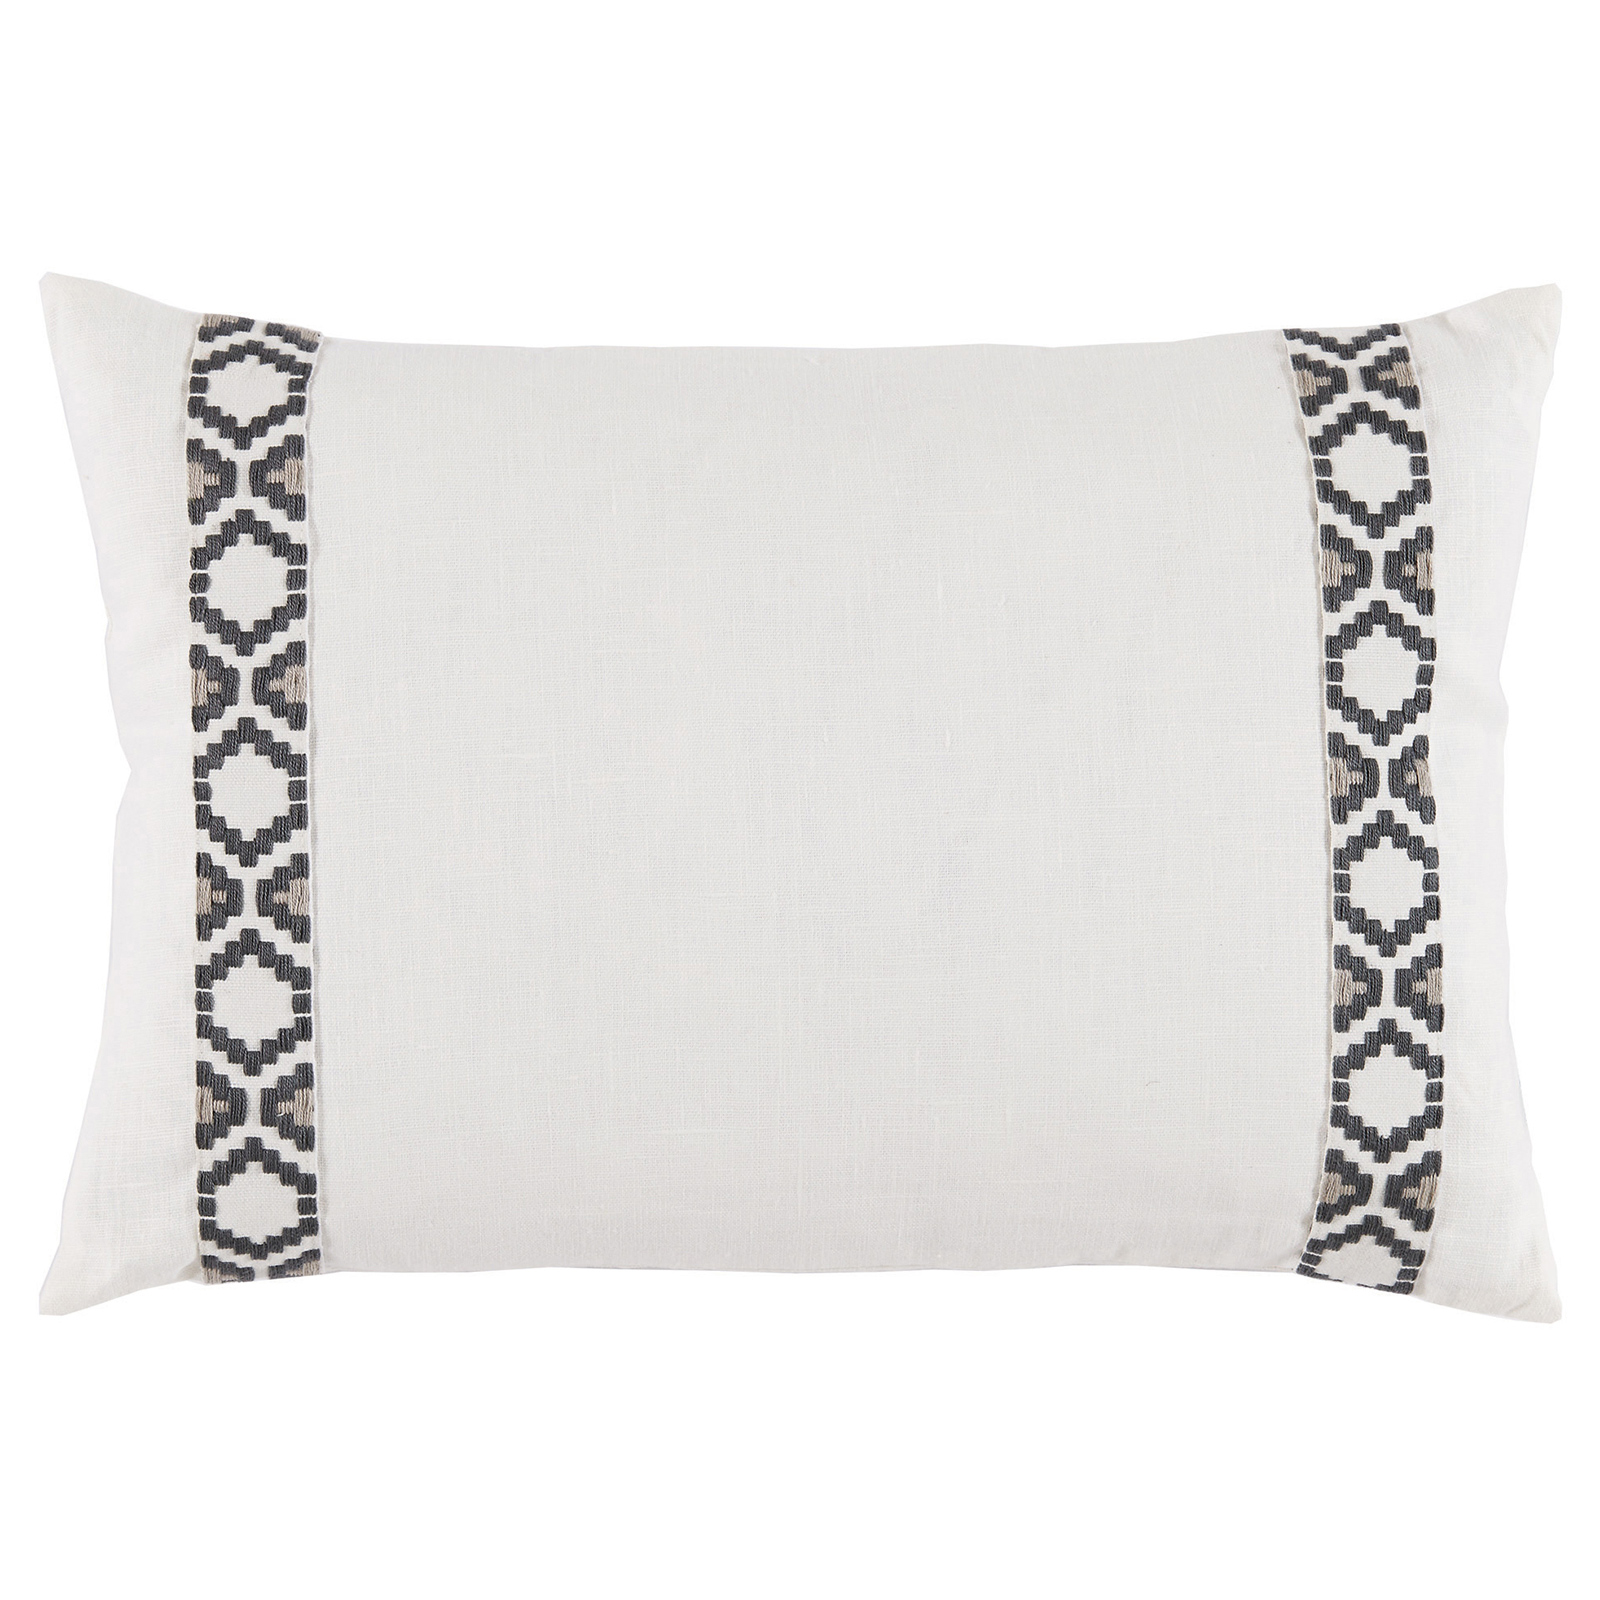 Kaia Global White Linen Grey Trim Band Pillow - 13x19